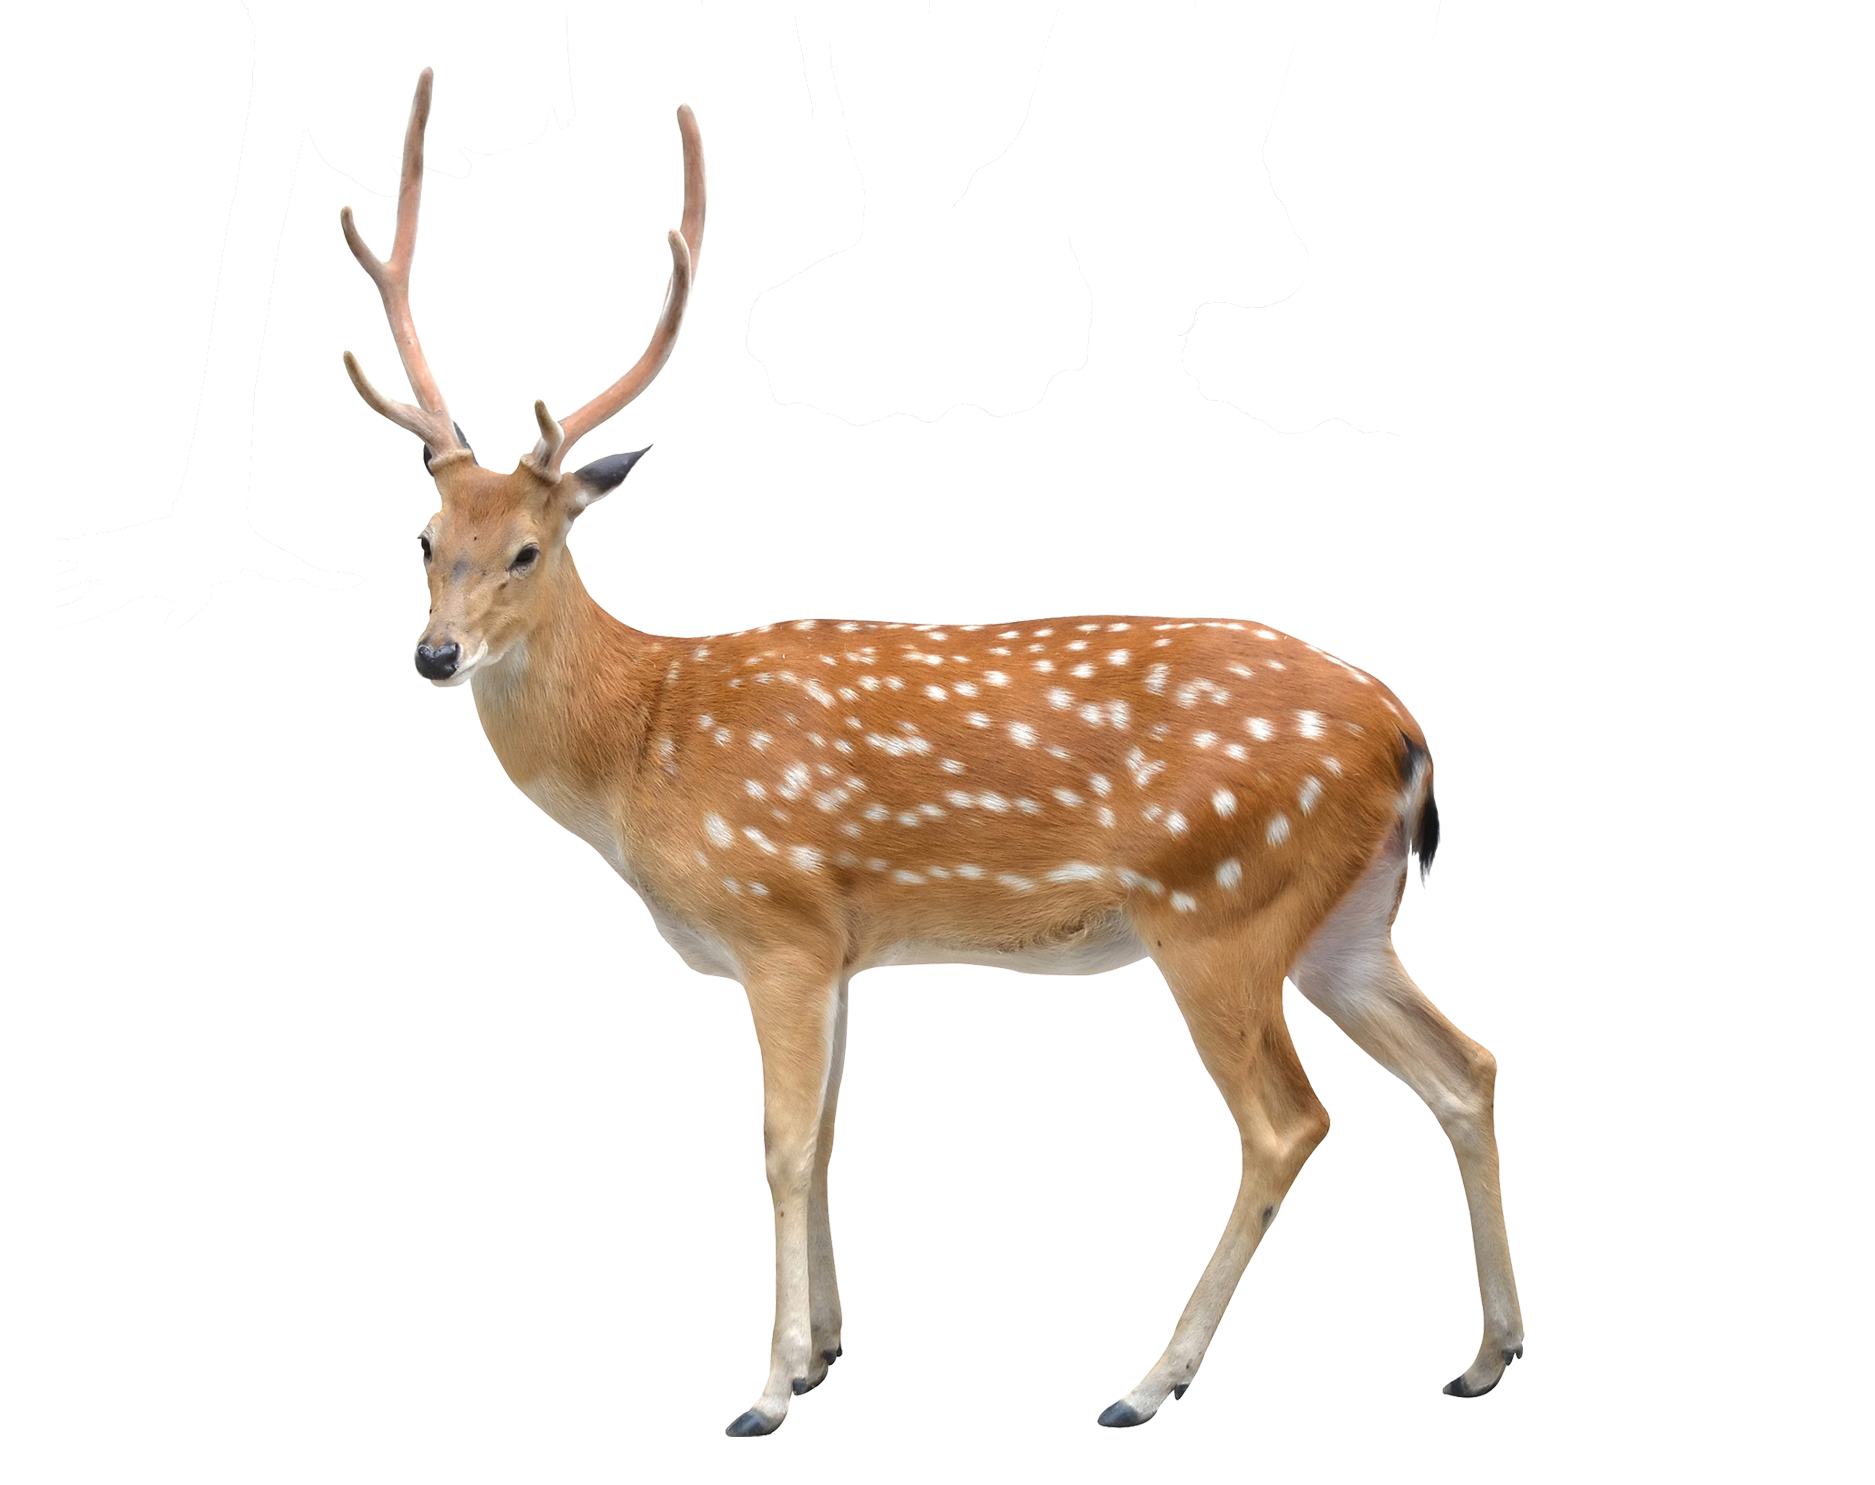 Stock photography clip art. Deer clipart sika deer